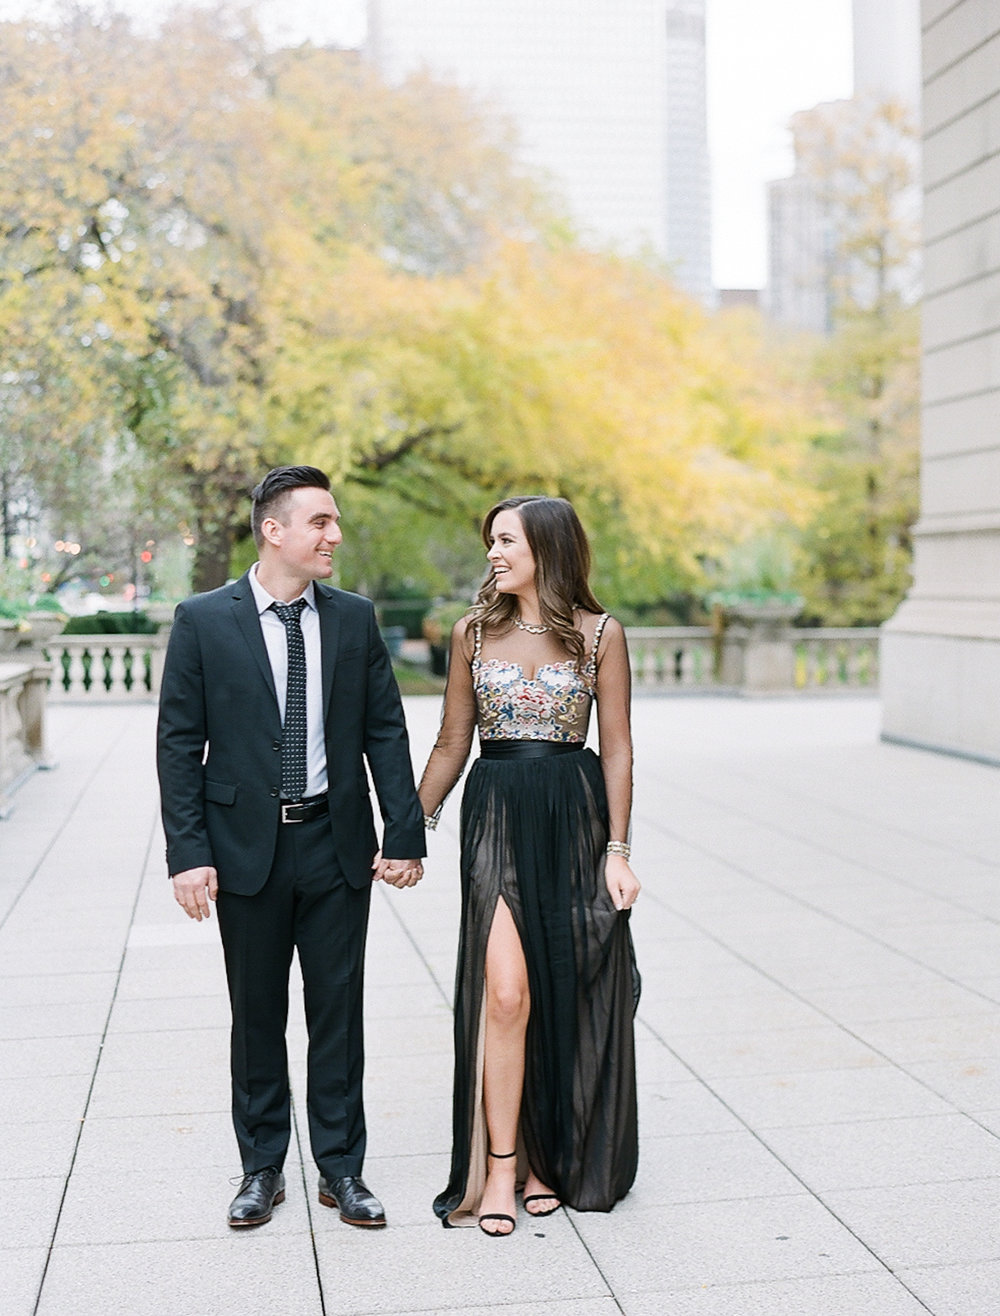 Bonphotage Chicago Fine Art Wedding Photography - Chicago Art Institute